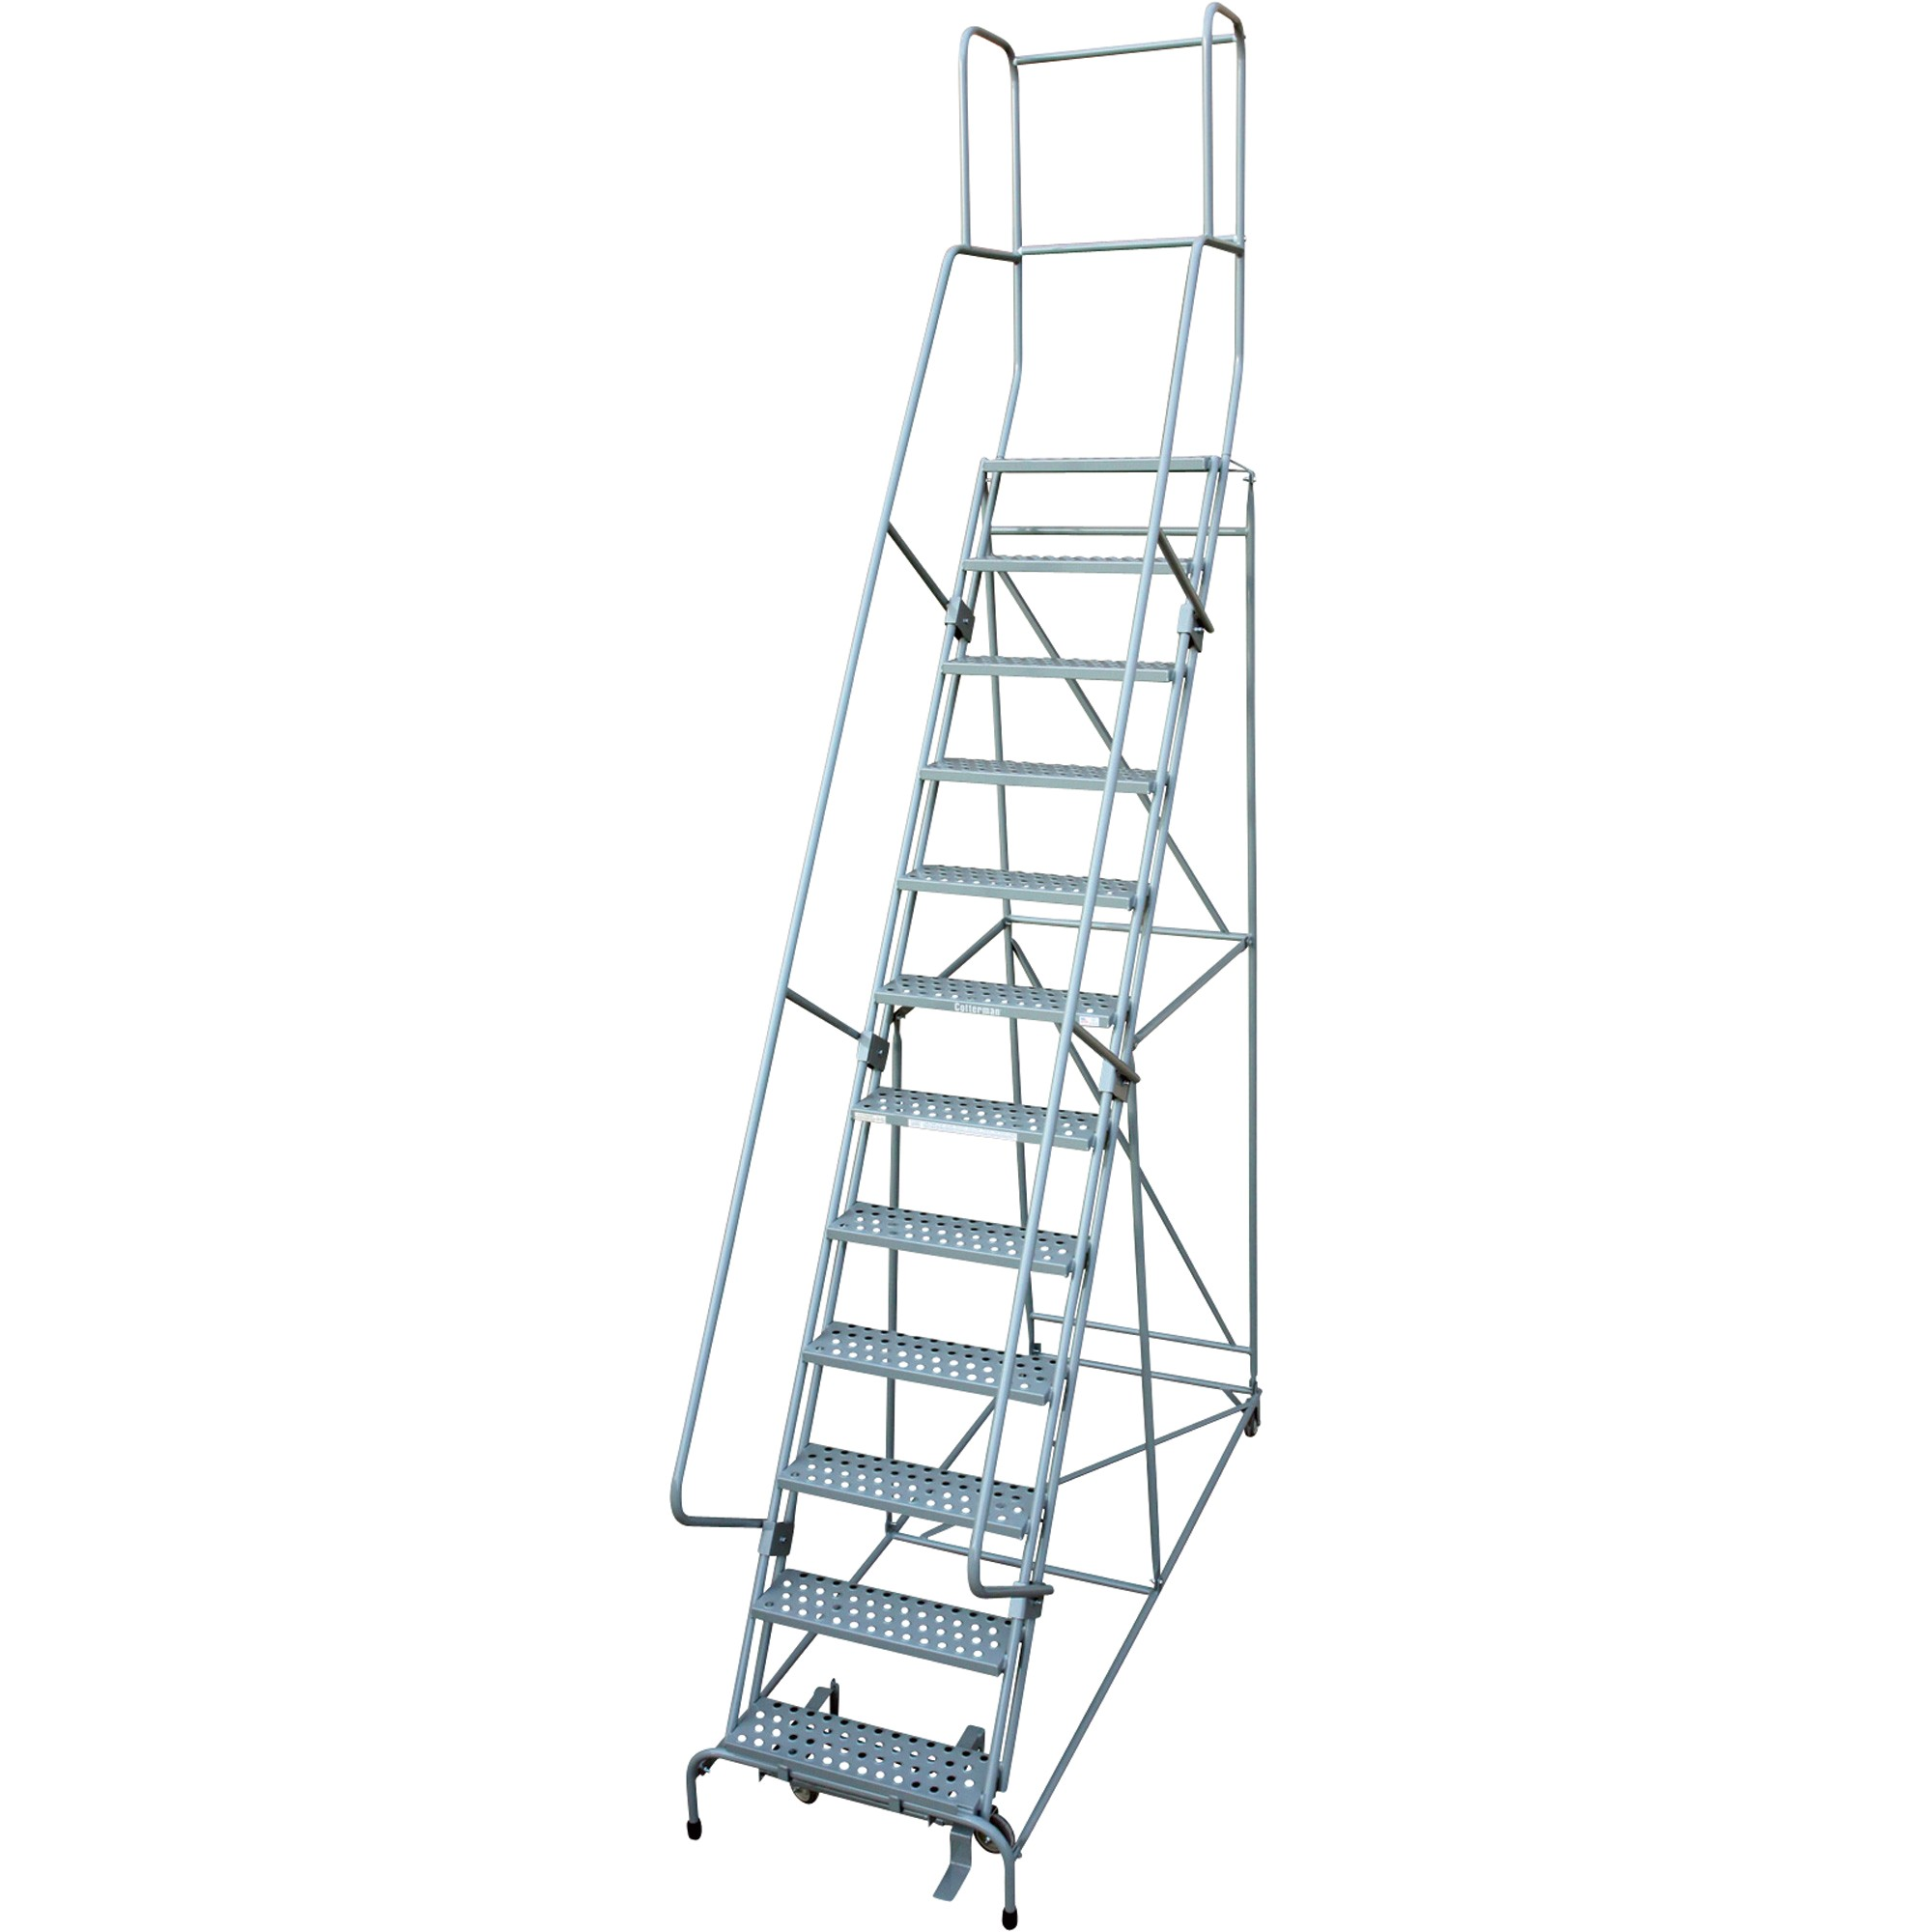 Library Ladder for Sale Craigslist | AdinaPorter